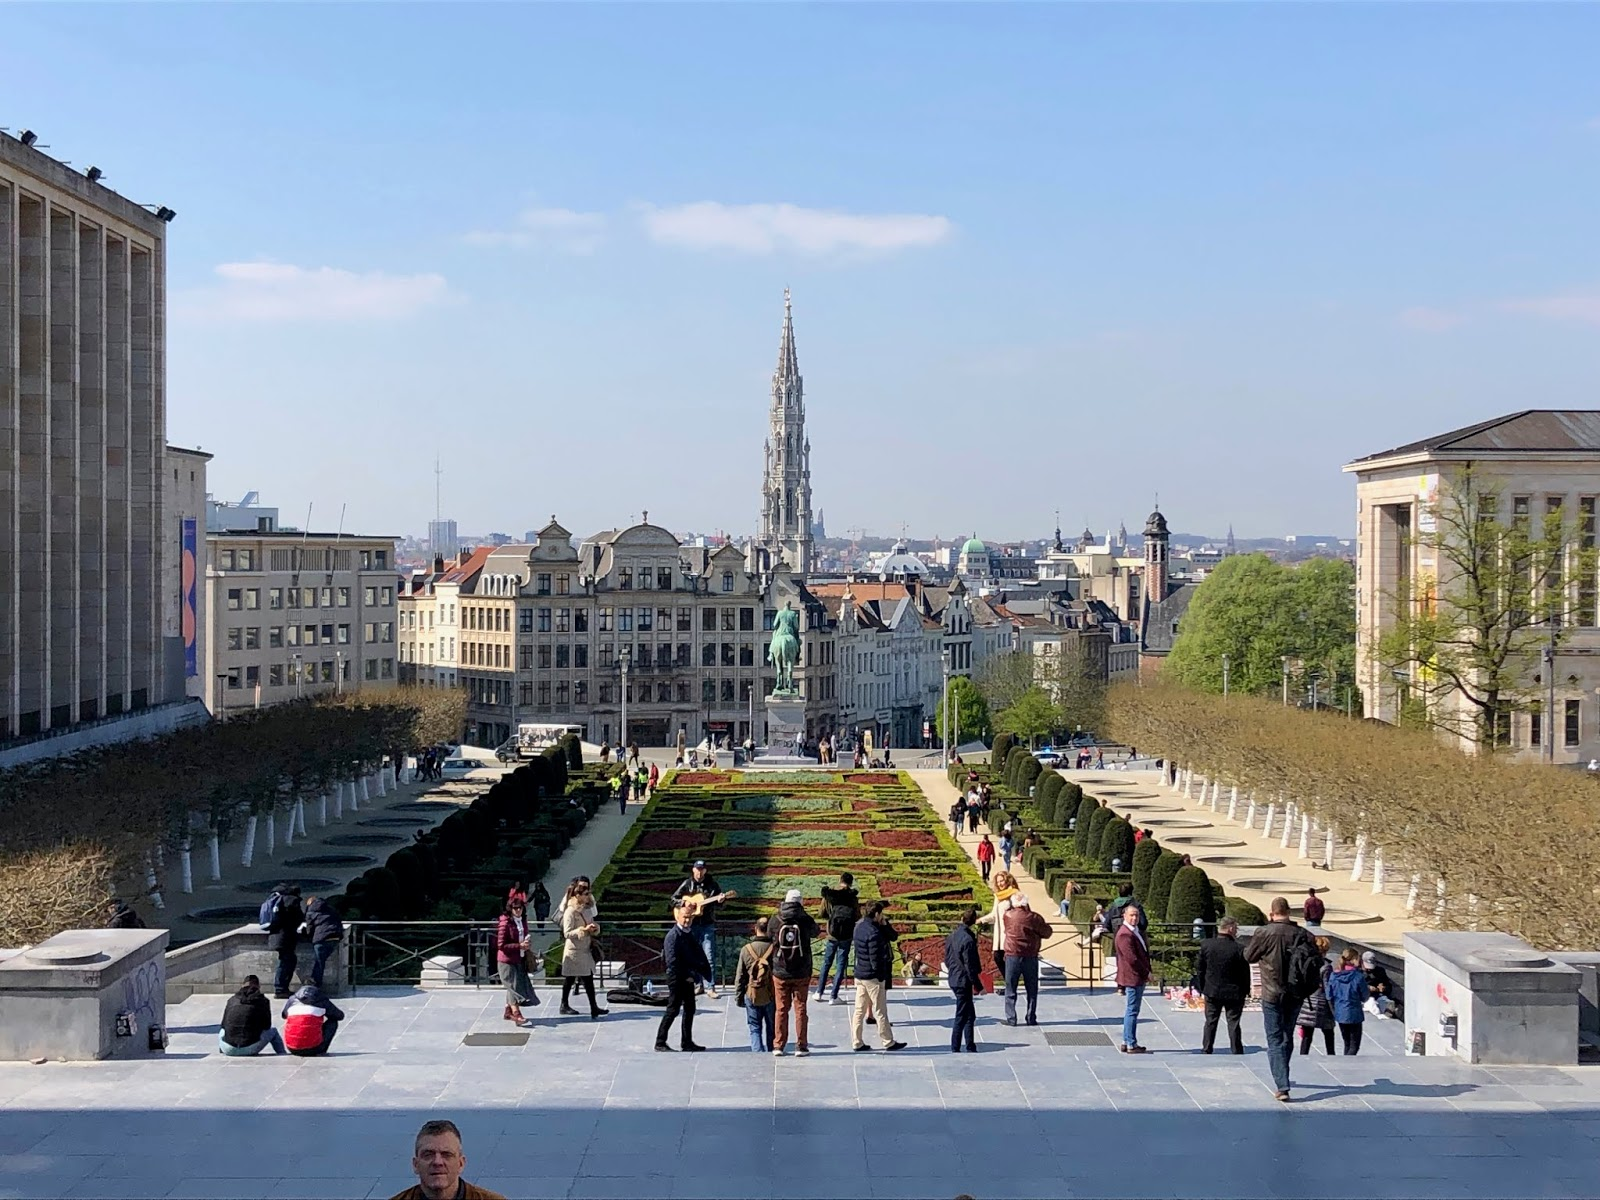 Mont des Arts in Brussels, Belgium